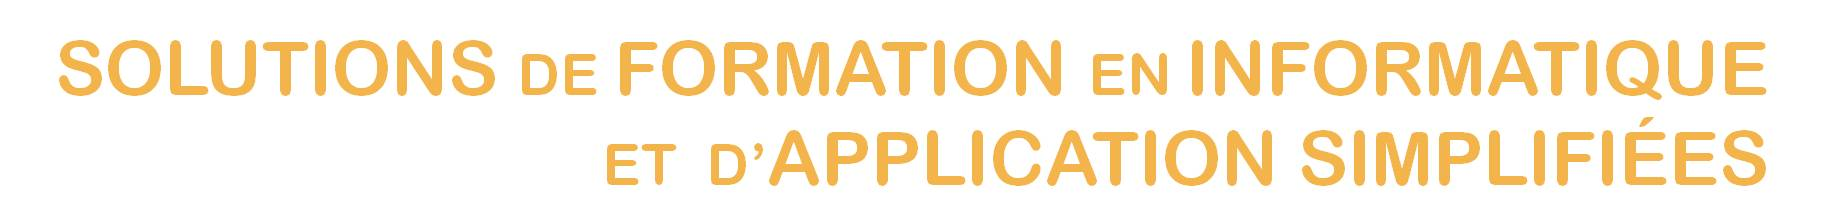 Formation en informatique & des solutions d'application simplifiées